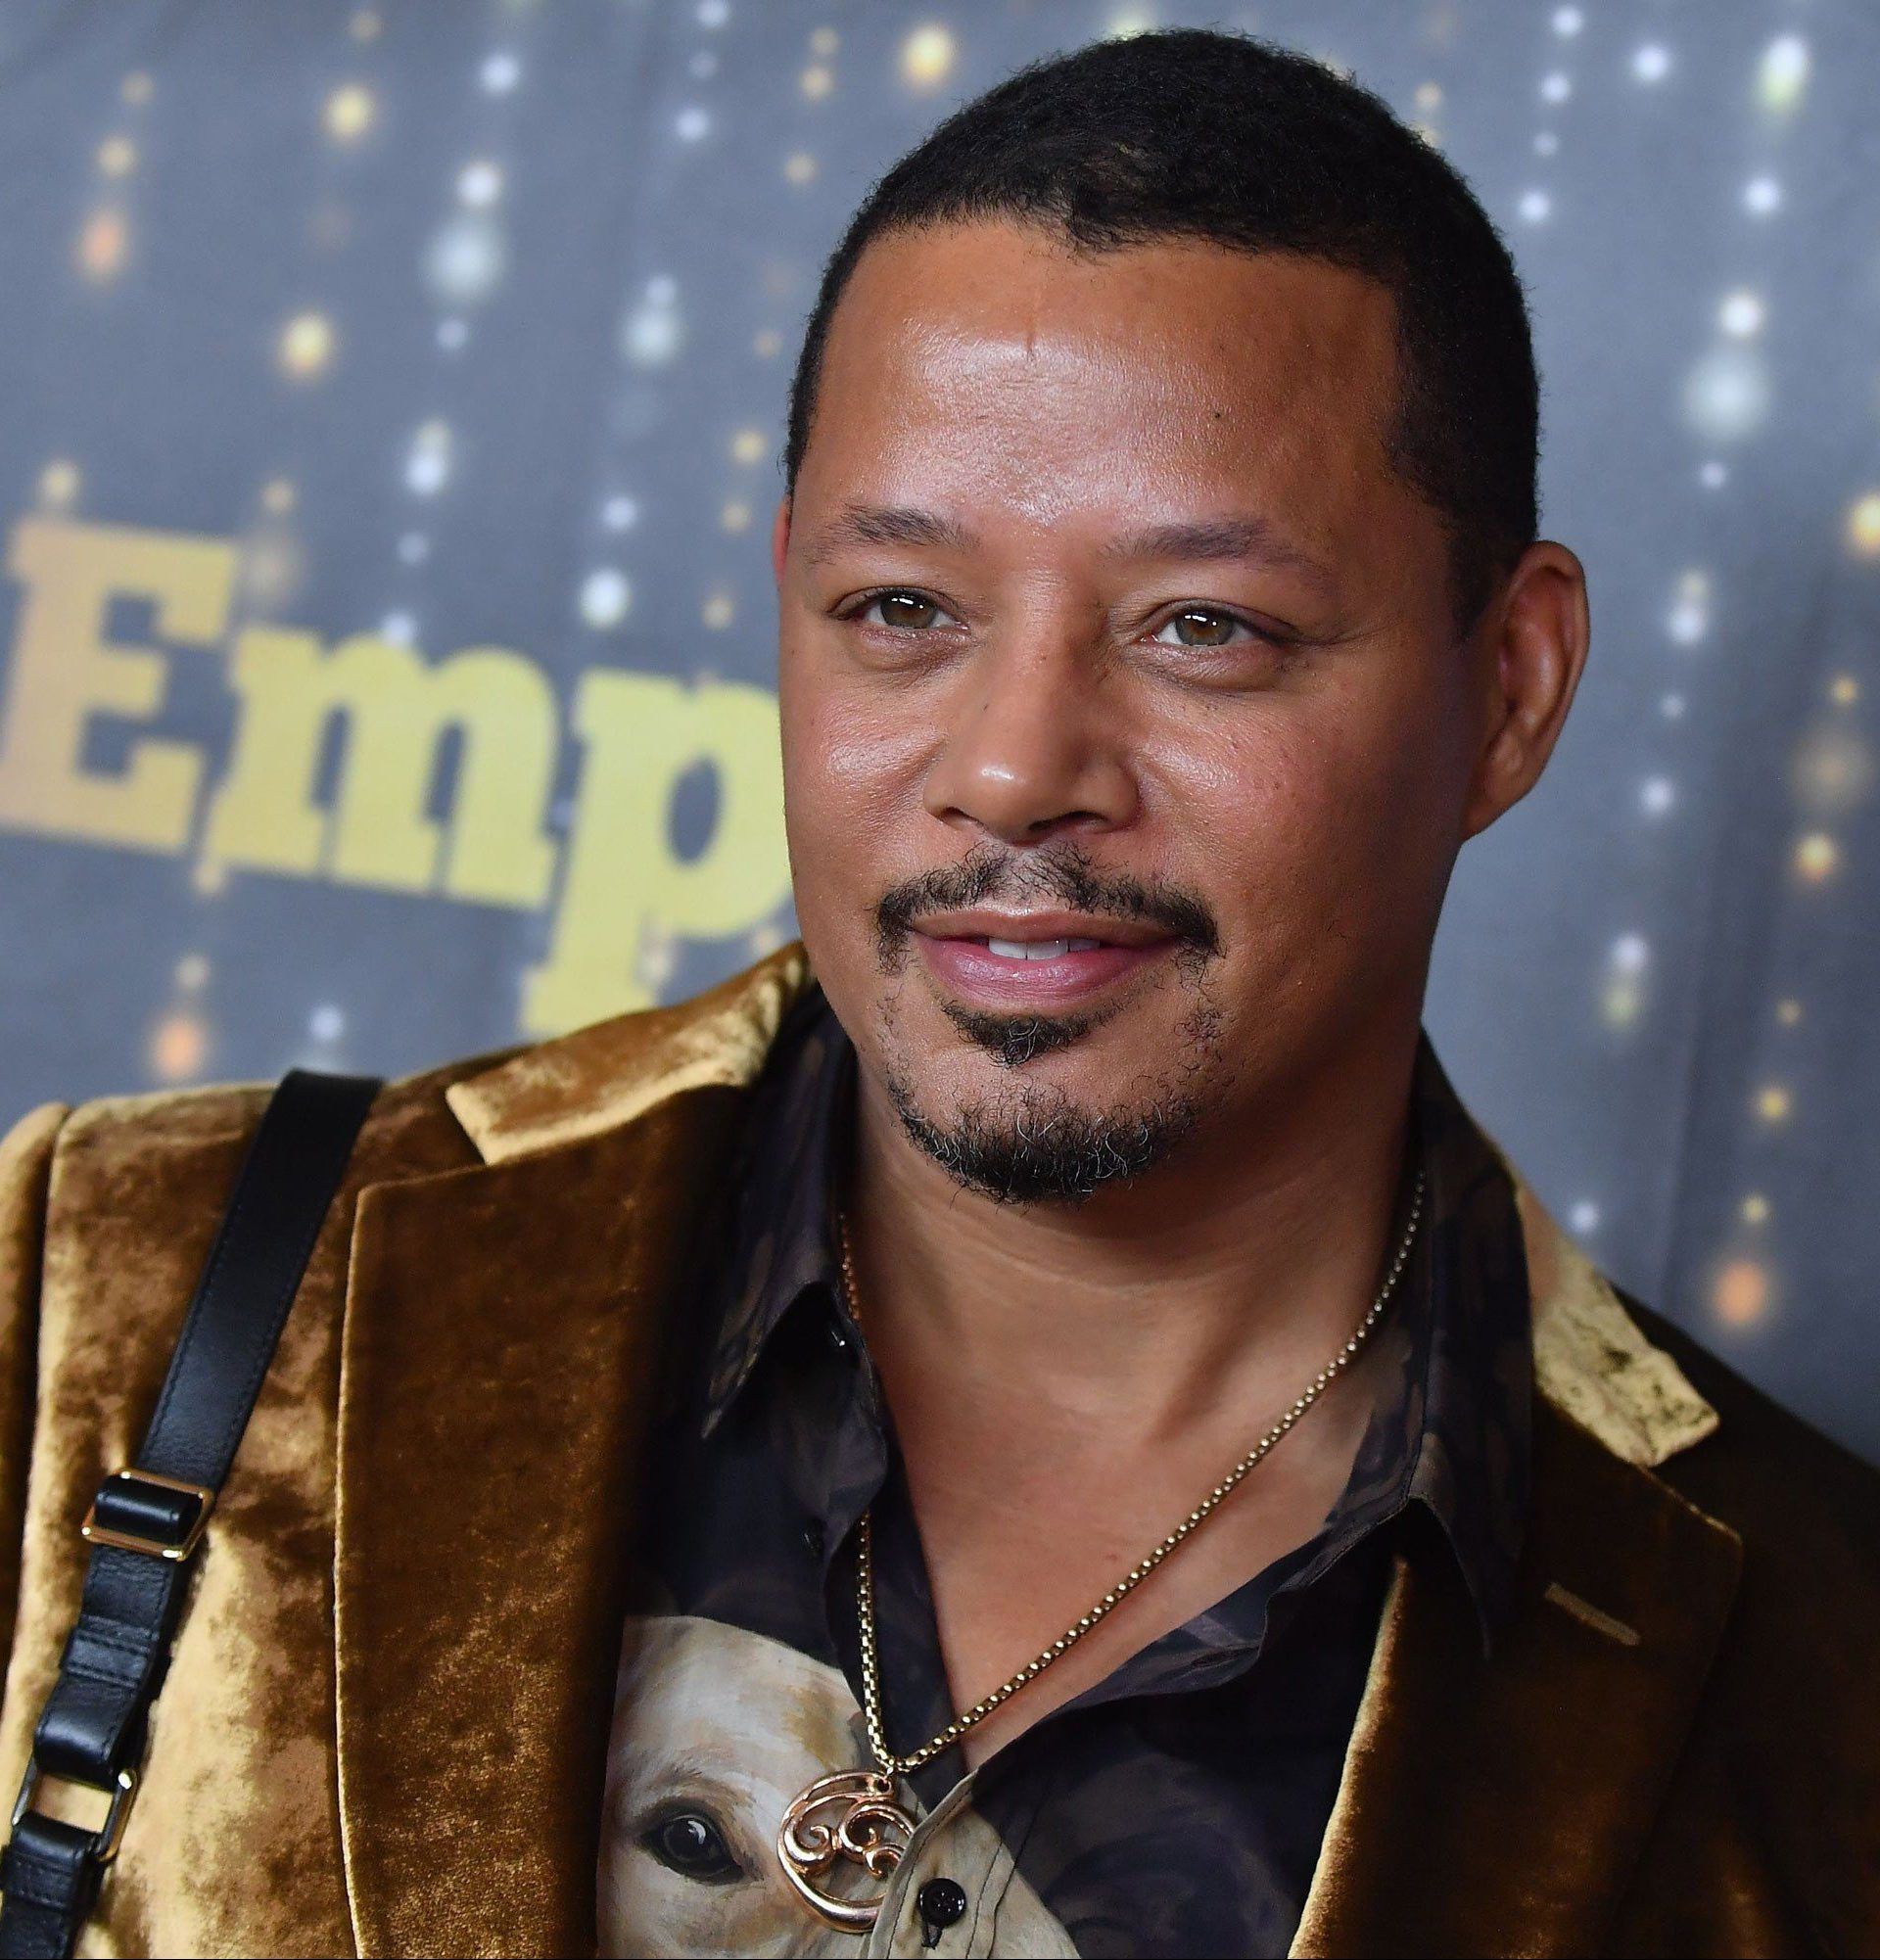 terrance howard e1561110569107 20 Celebrities You Didn't Know Had Committed Crimes